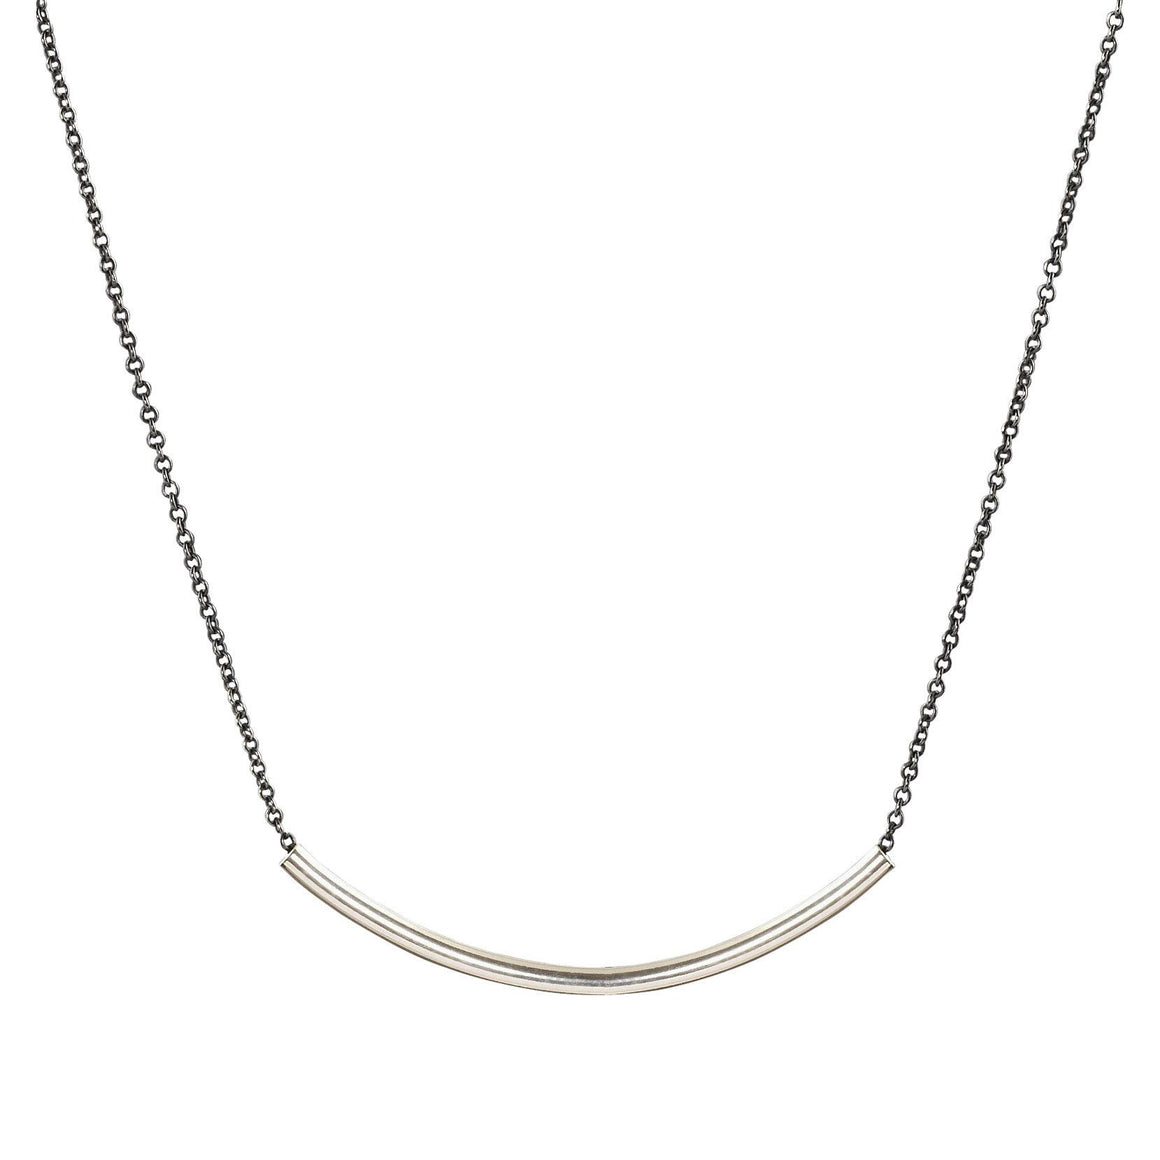 Minimalist silver sliding bar necklace on blackened chain